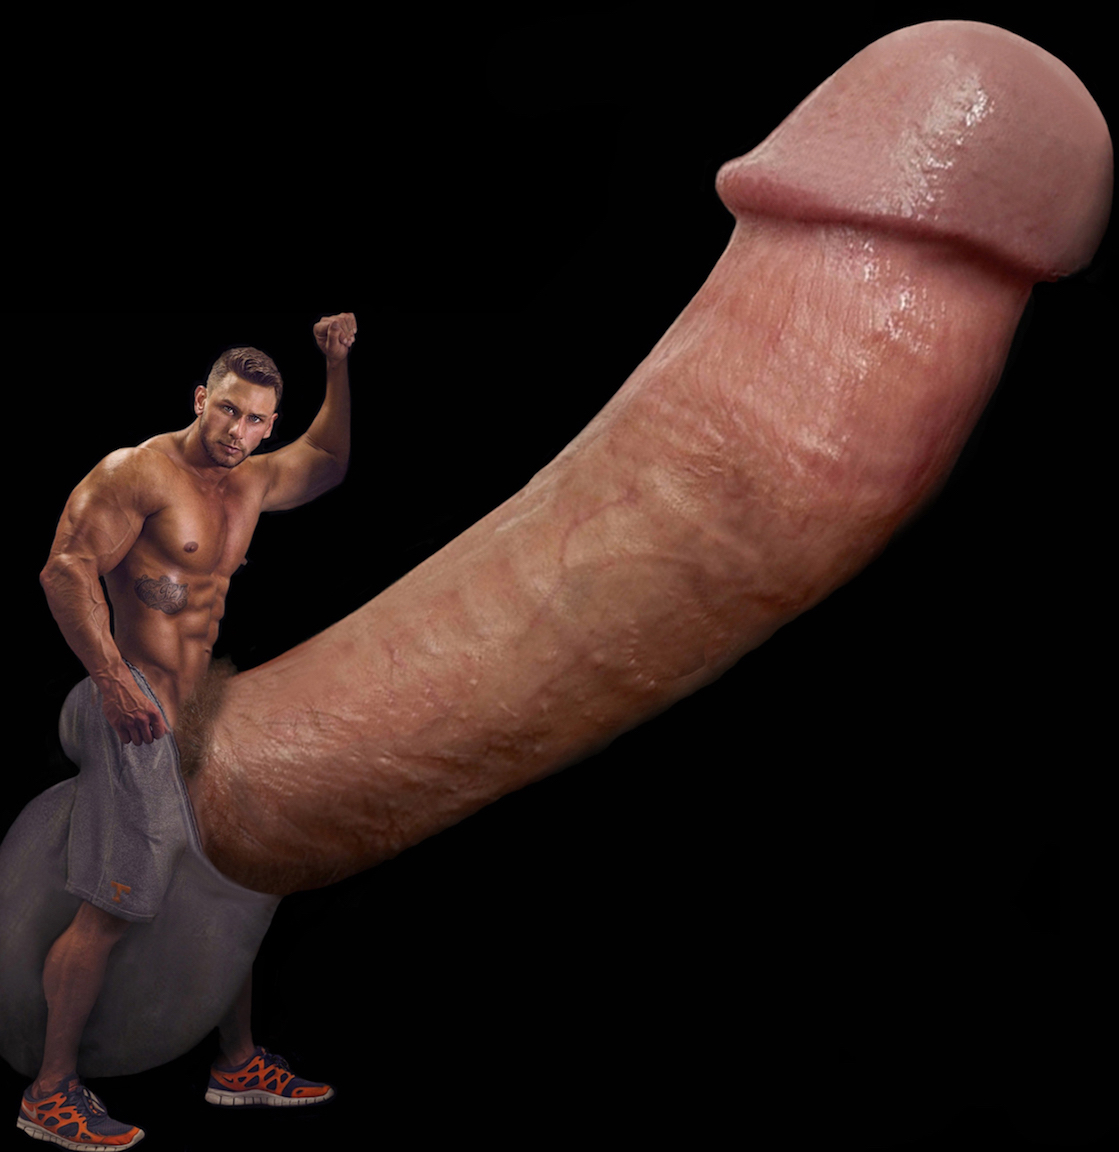 Largest Cock In The World 37